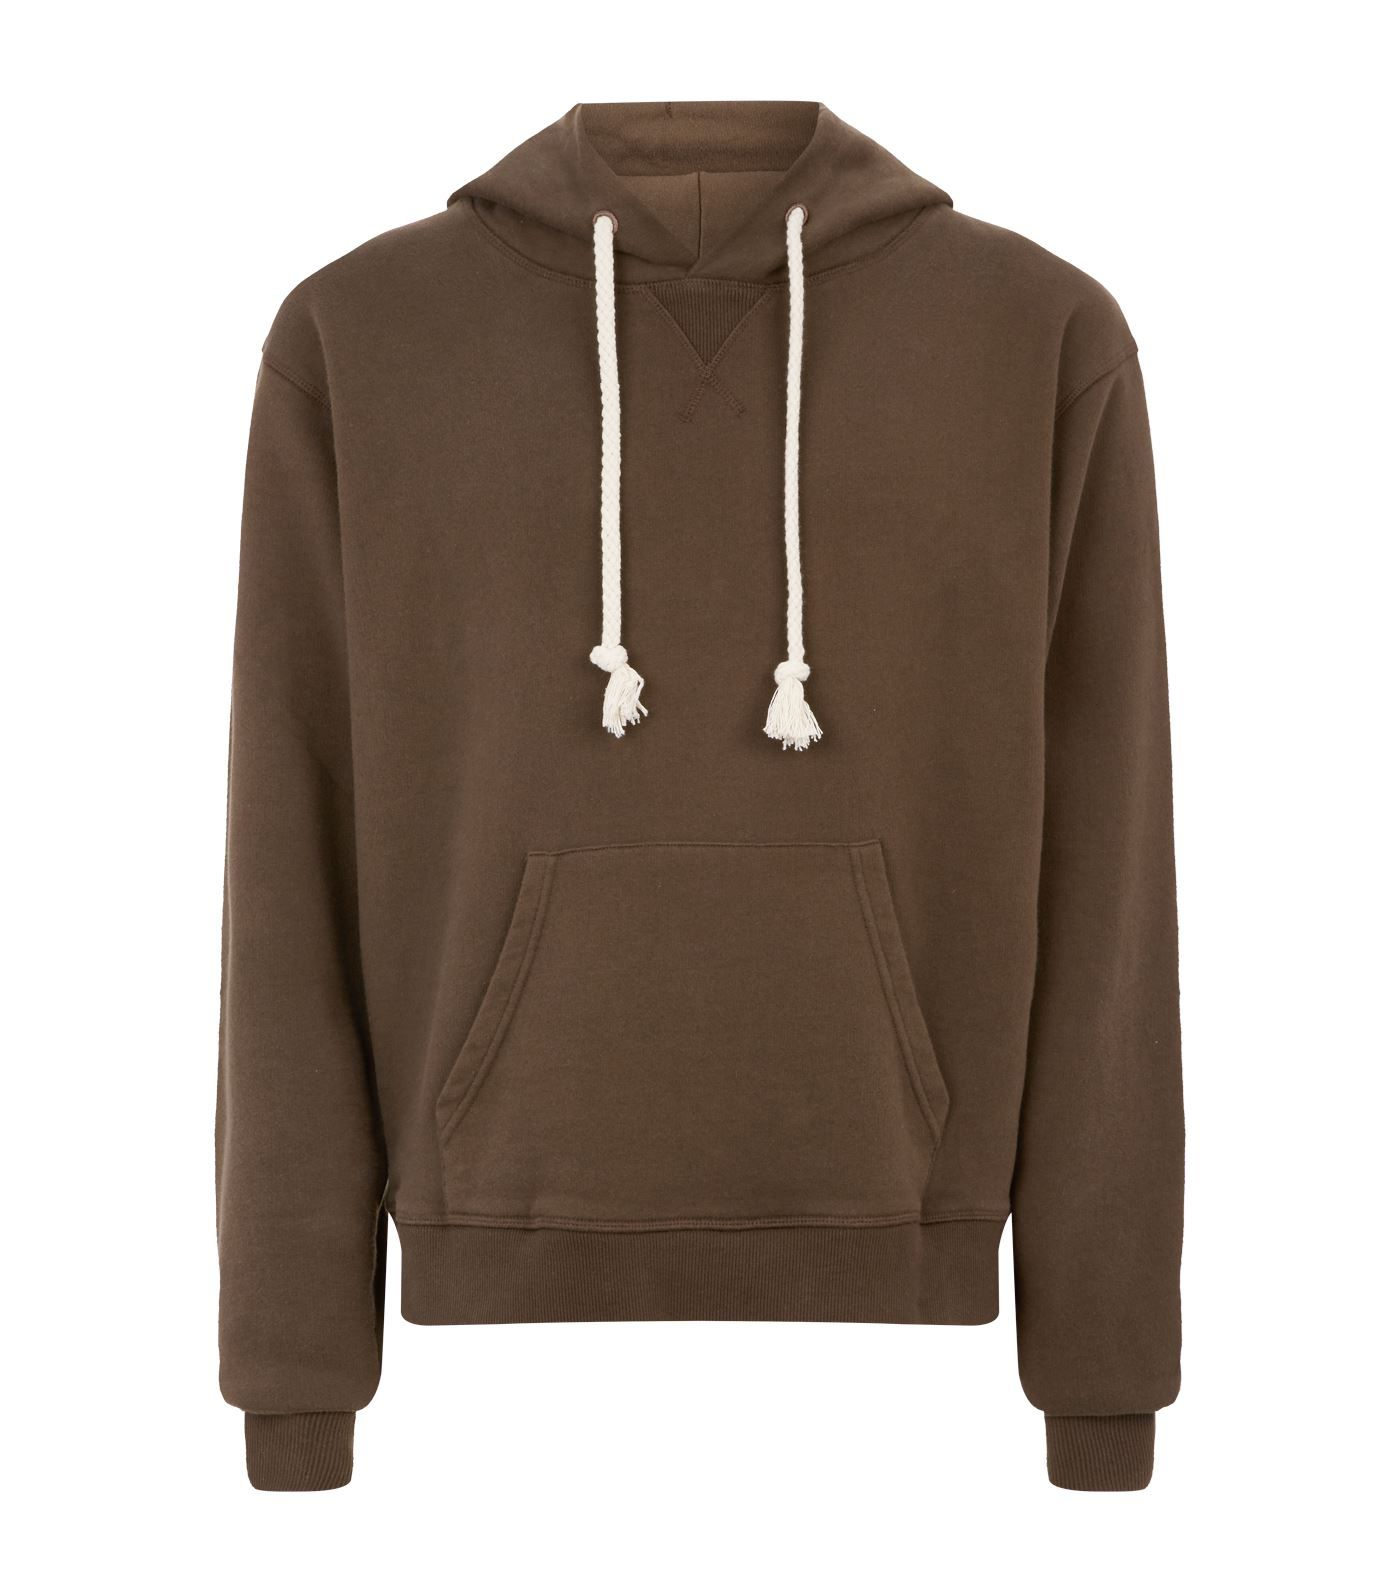 w J cloth Hoodie j Embroidered Logo w anderson anderson gdwfqdxR